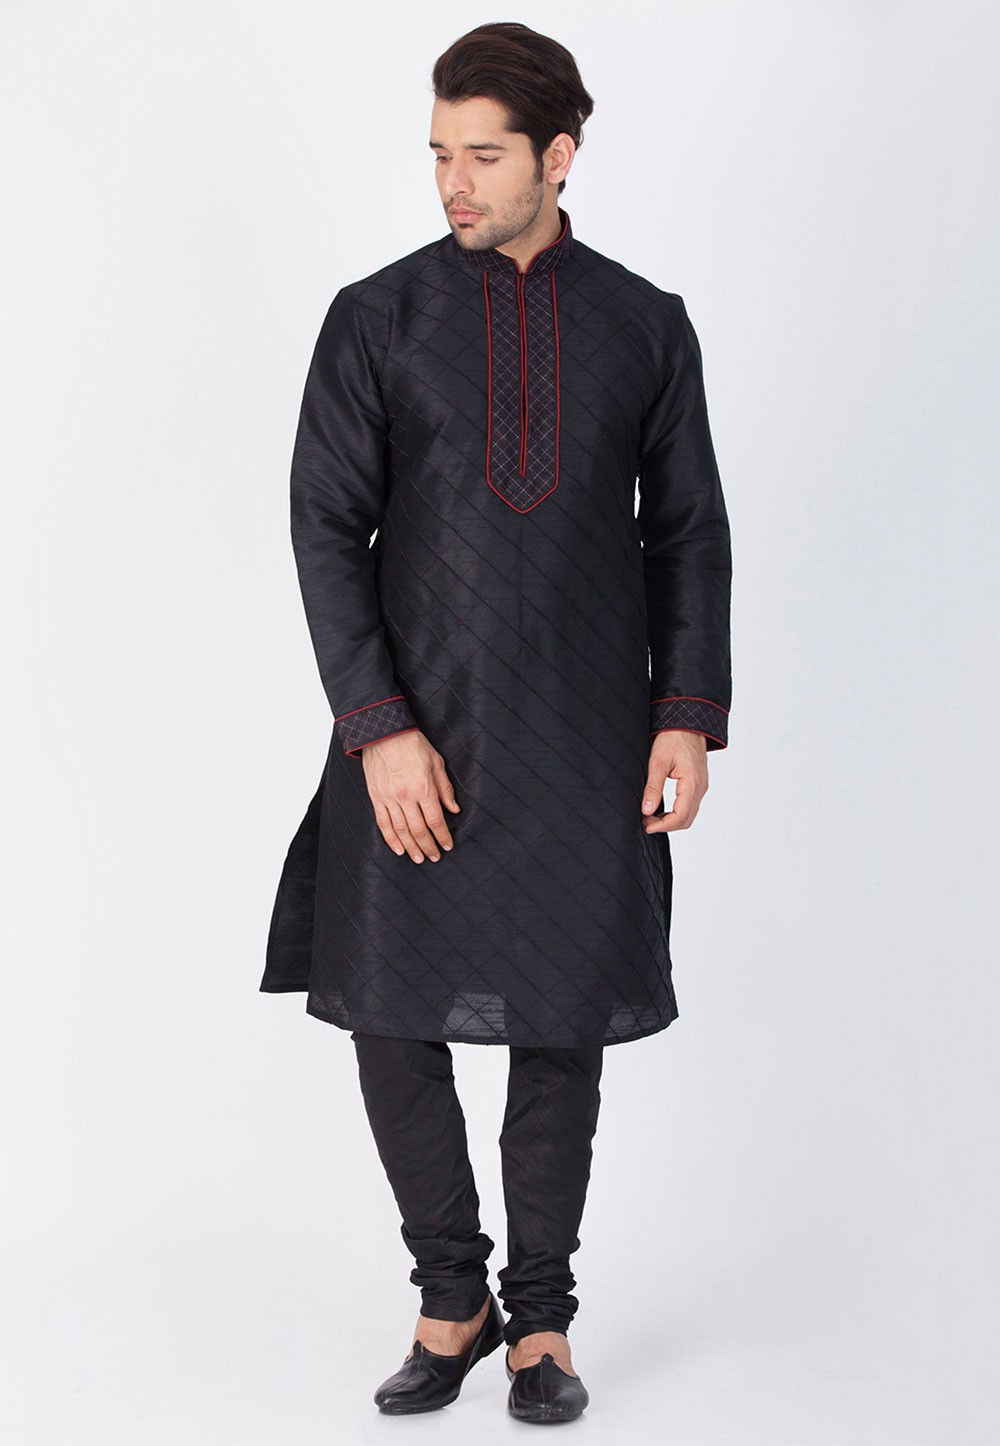 Black Color Party Wear Kurta.